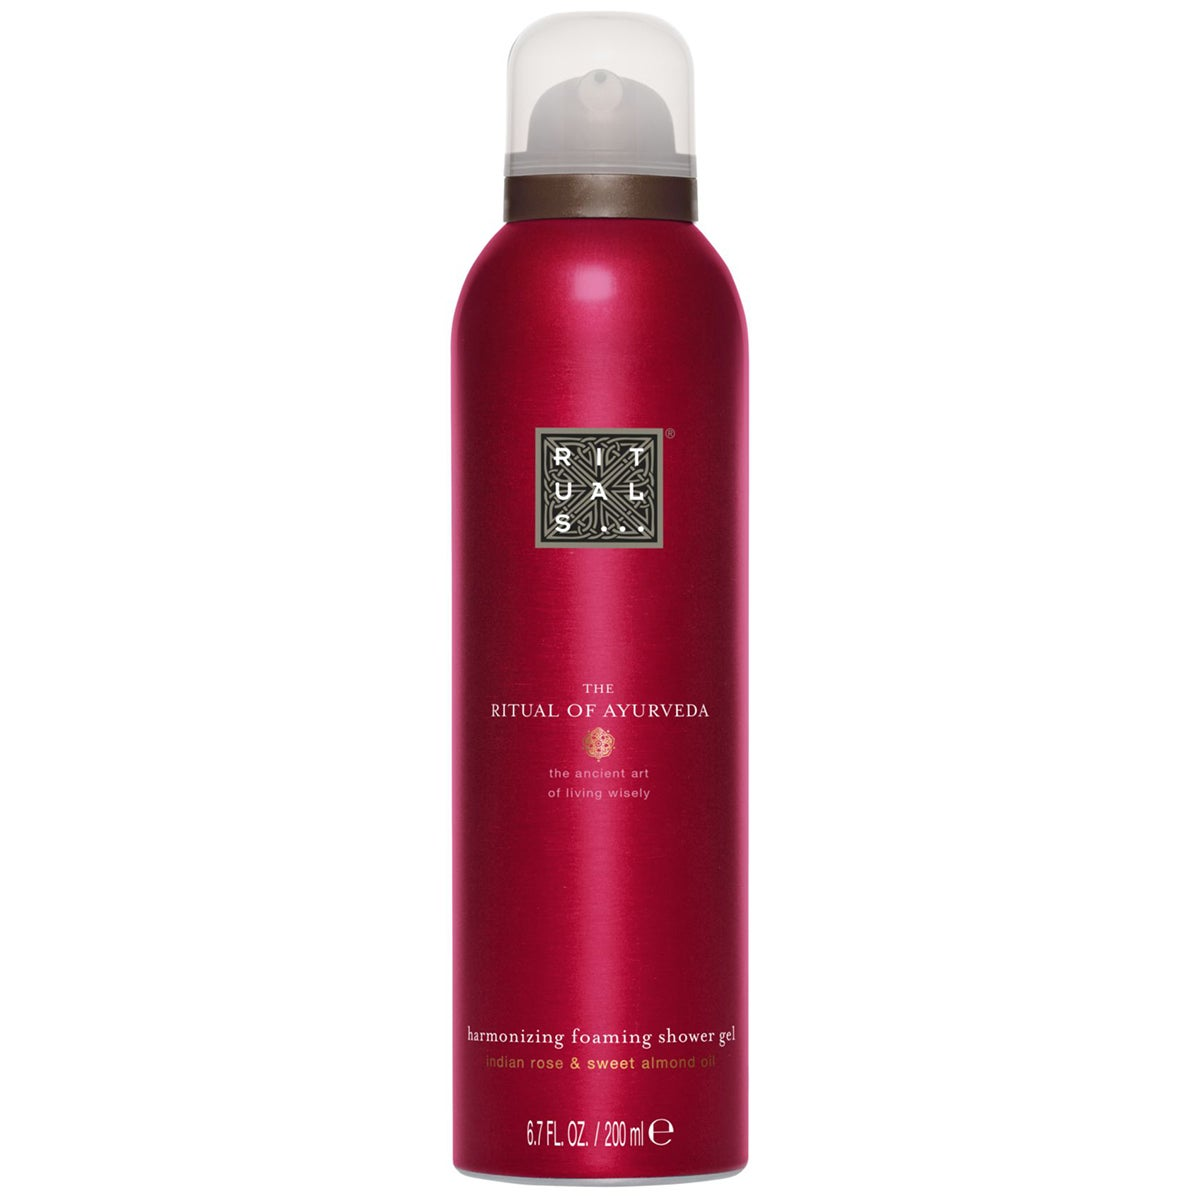 Rituals... The Ritual of Ayurveda Foaming Shower Gel